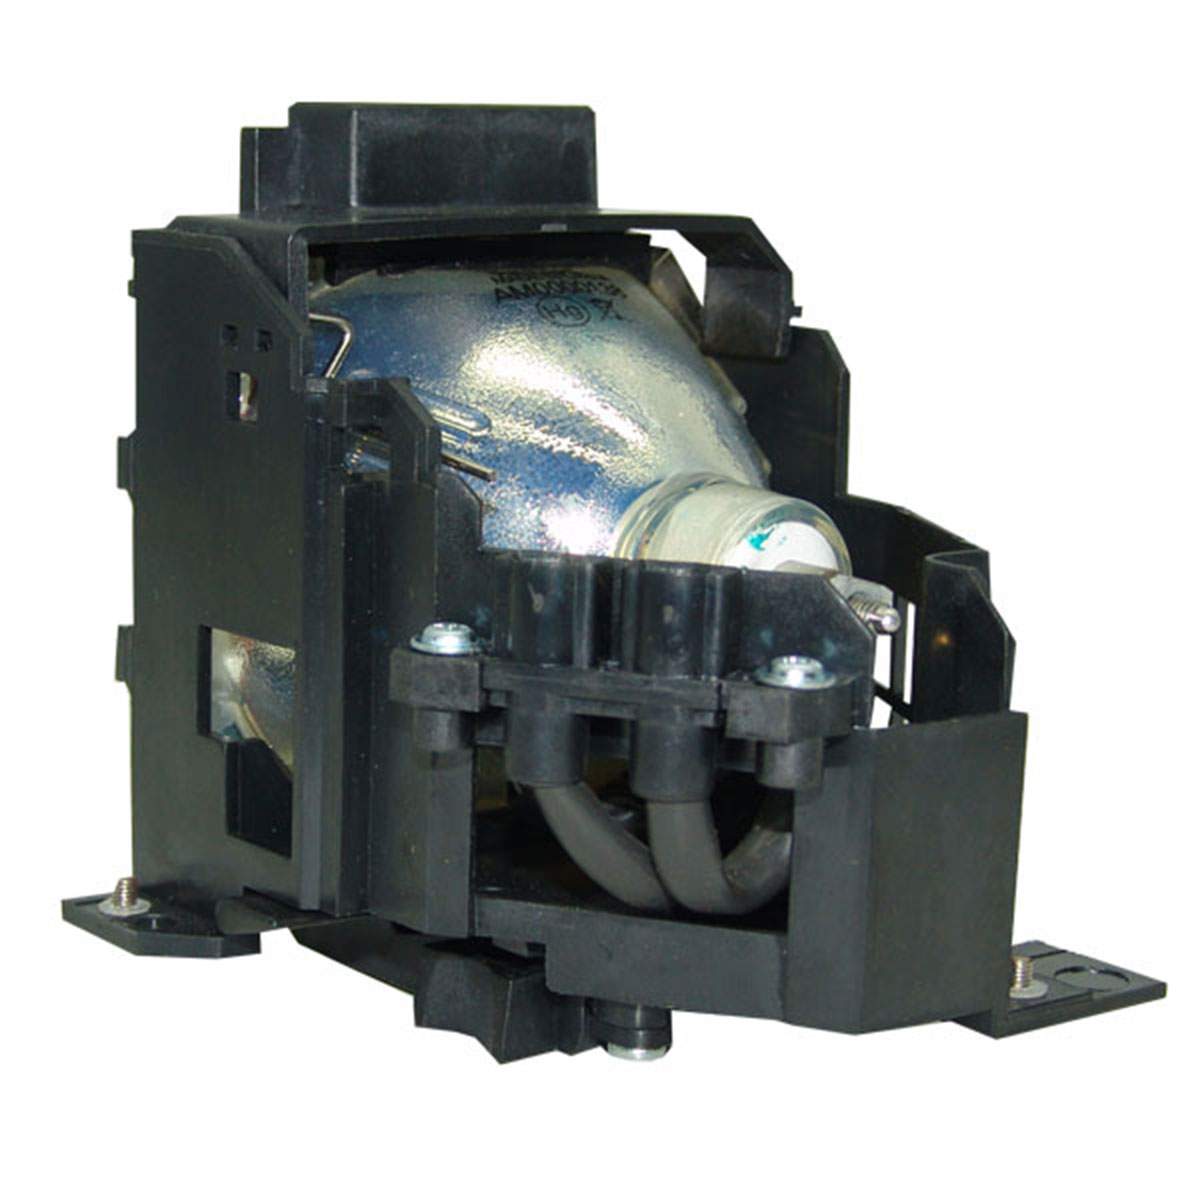 Original Philips Projector Lamp Replacement for Epson EMP-810UG (Bulb Only) - image 1 de 5